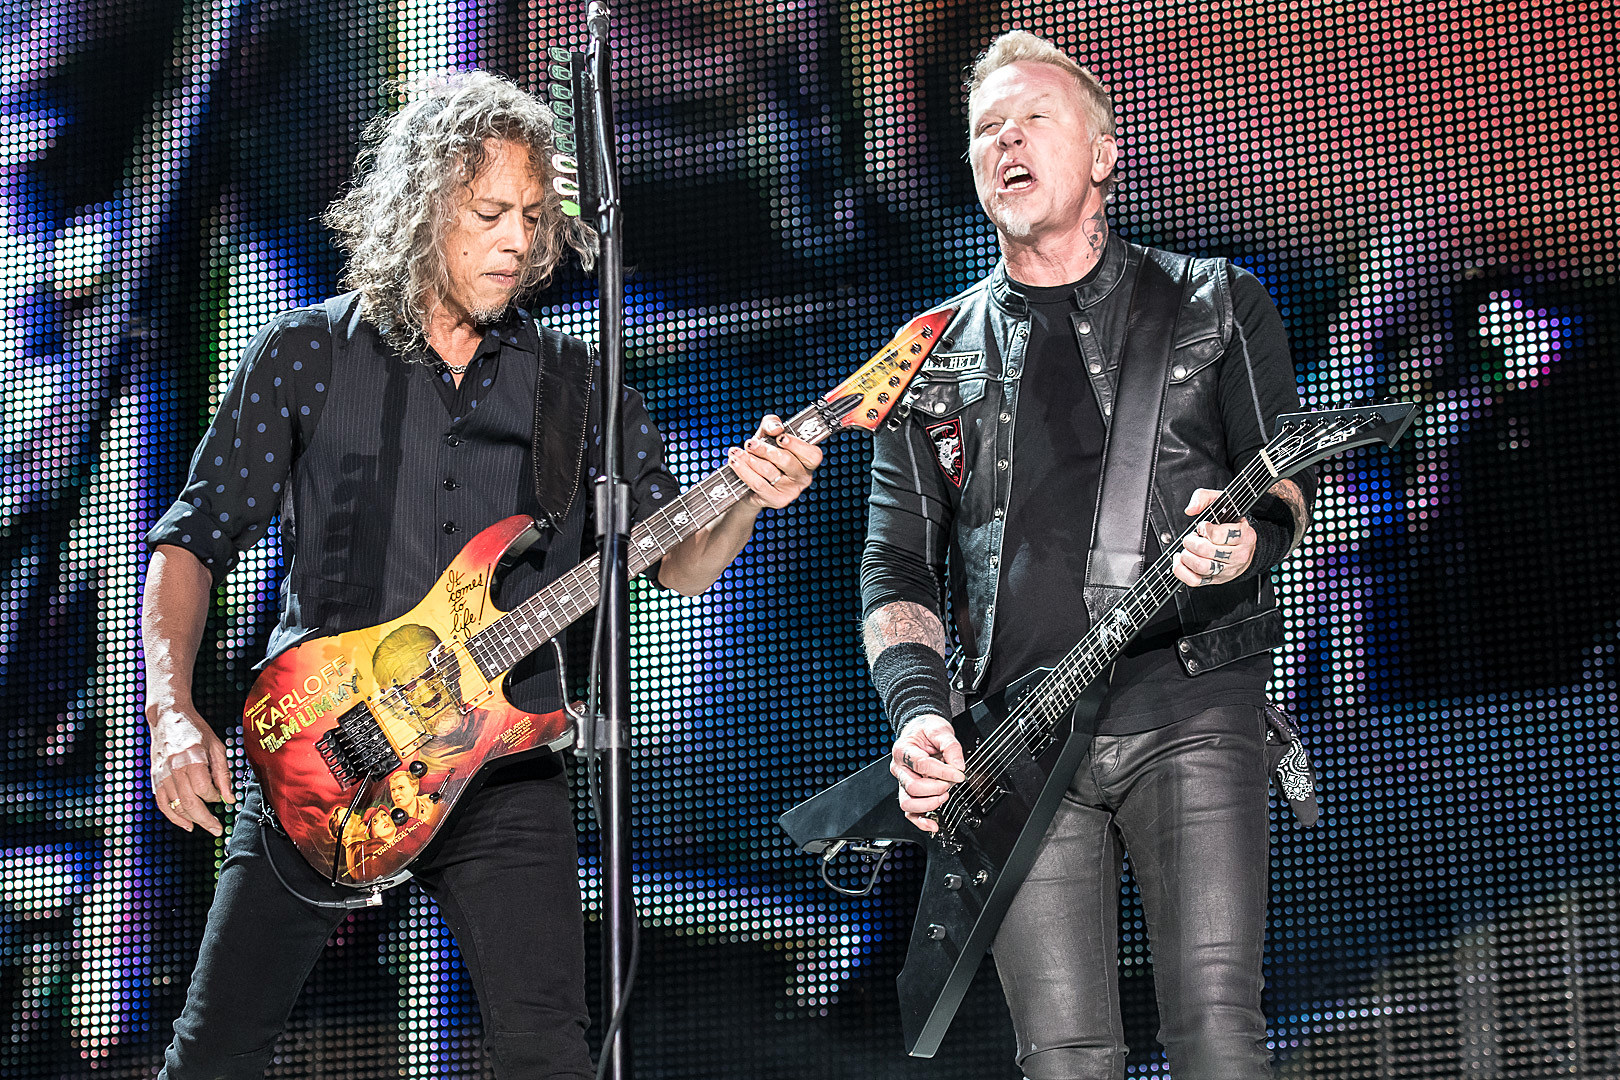 Join Metallica Contest Winners On a Guided Video Tour of HQ